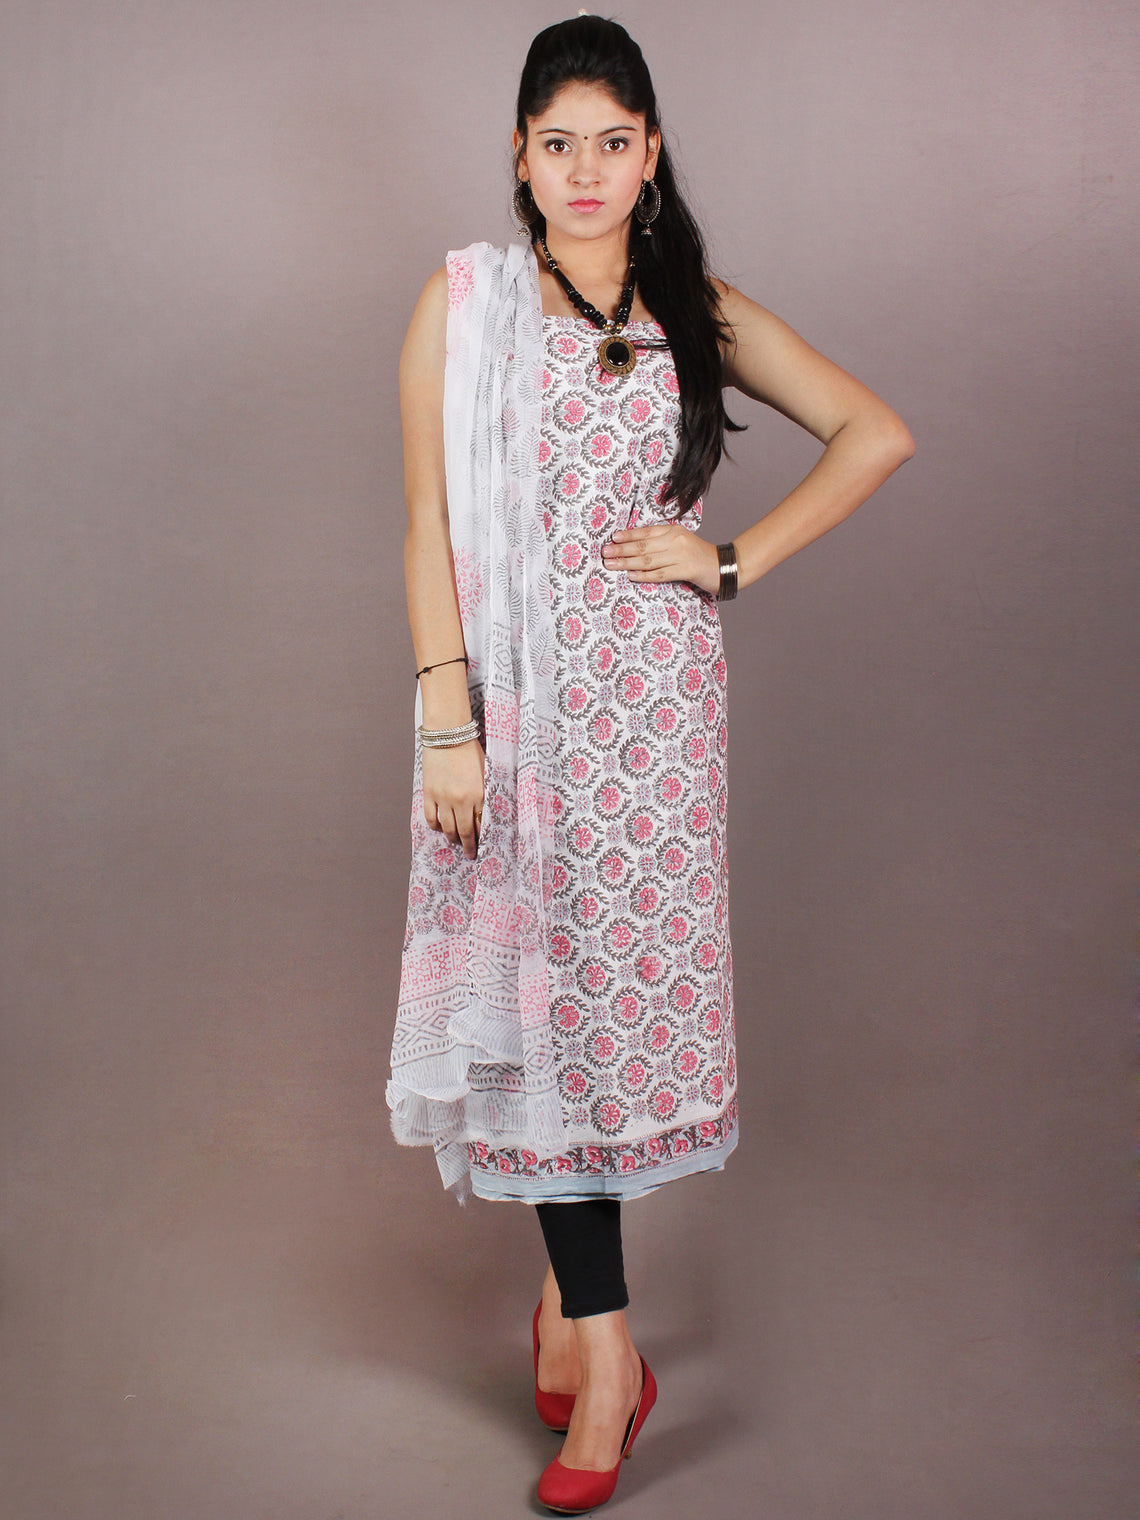 White Grey Pink Hand Block Printed Cotton Suit-Salwar Fabric With Chiffon Dupatta - S1628101